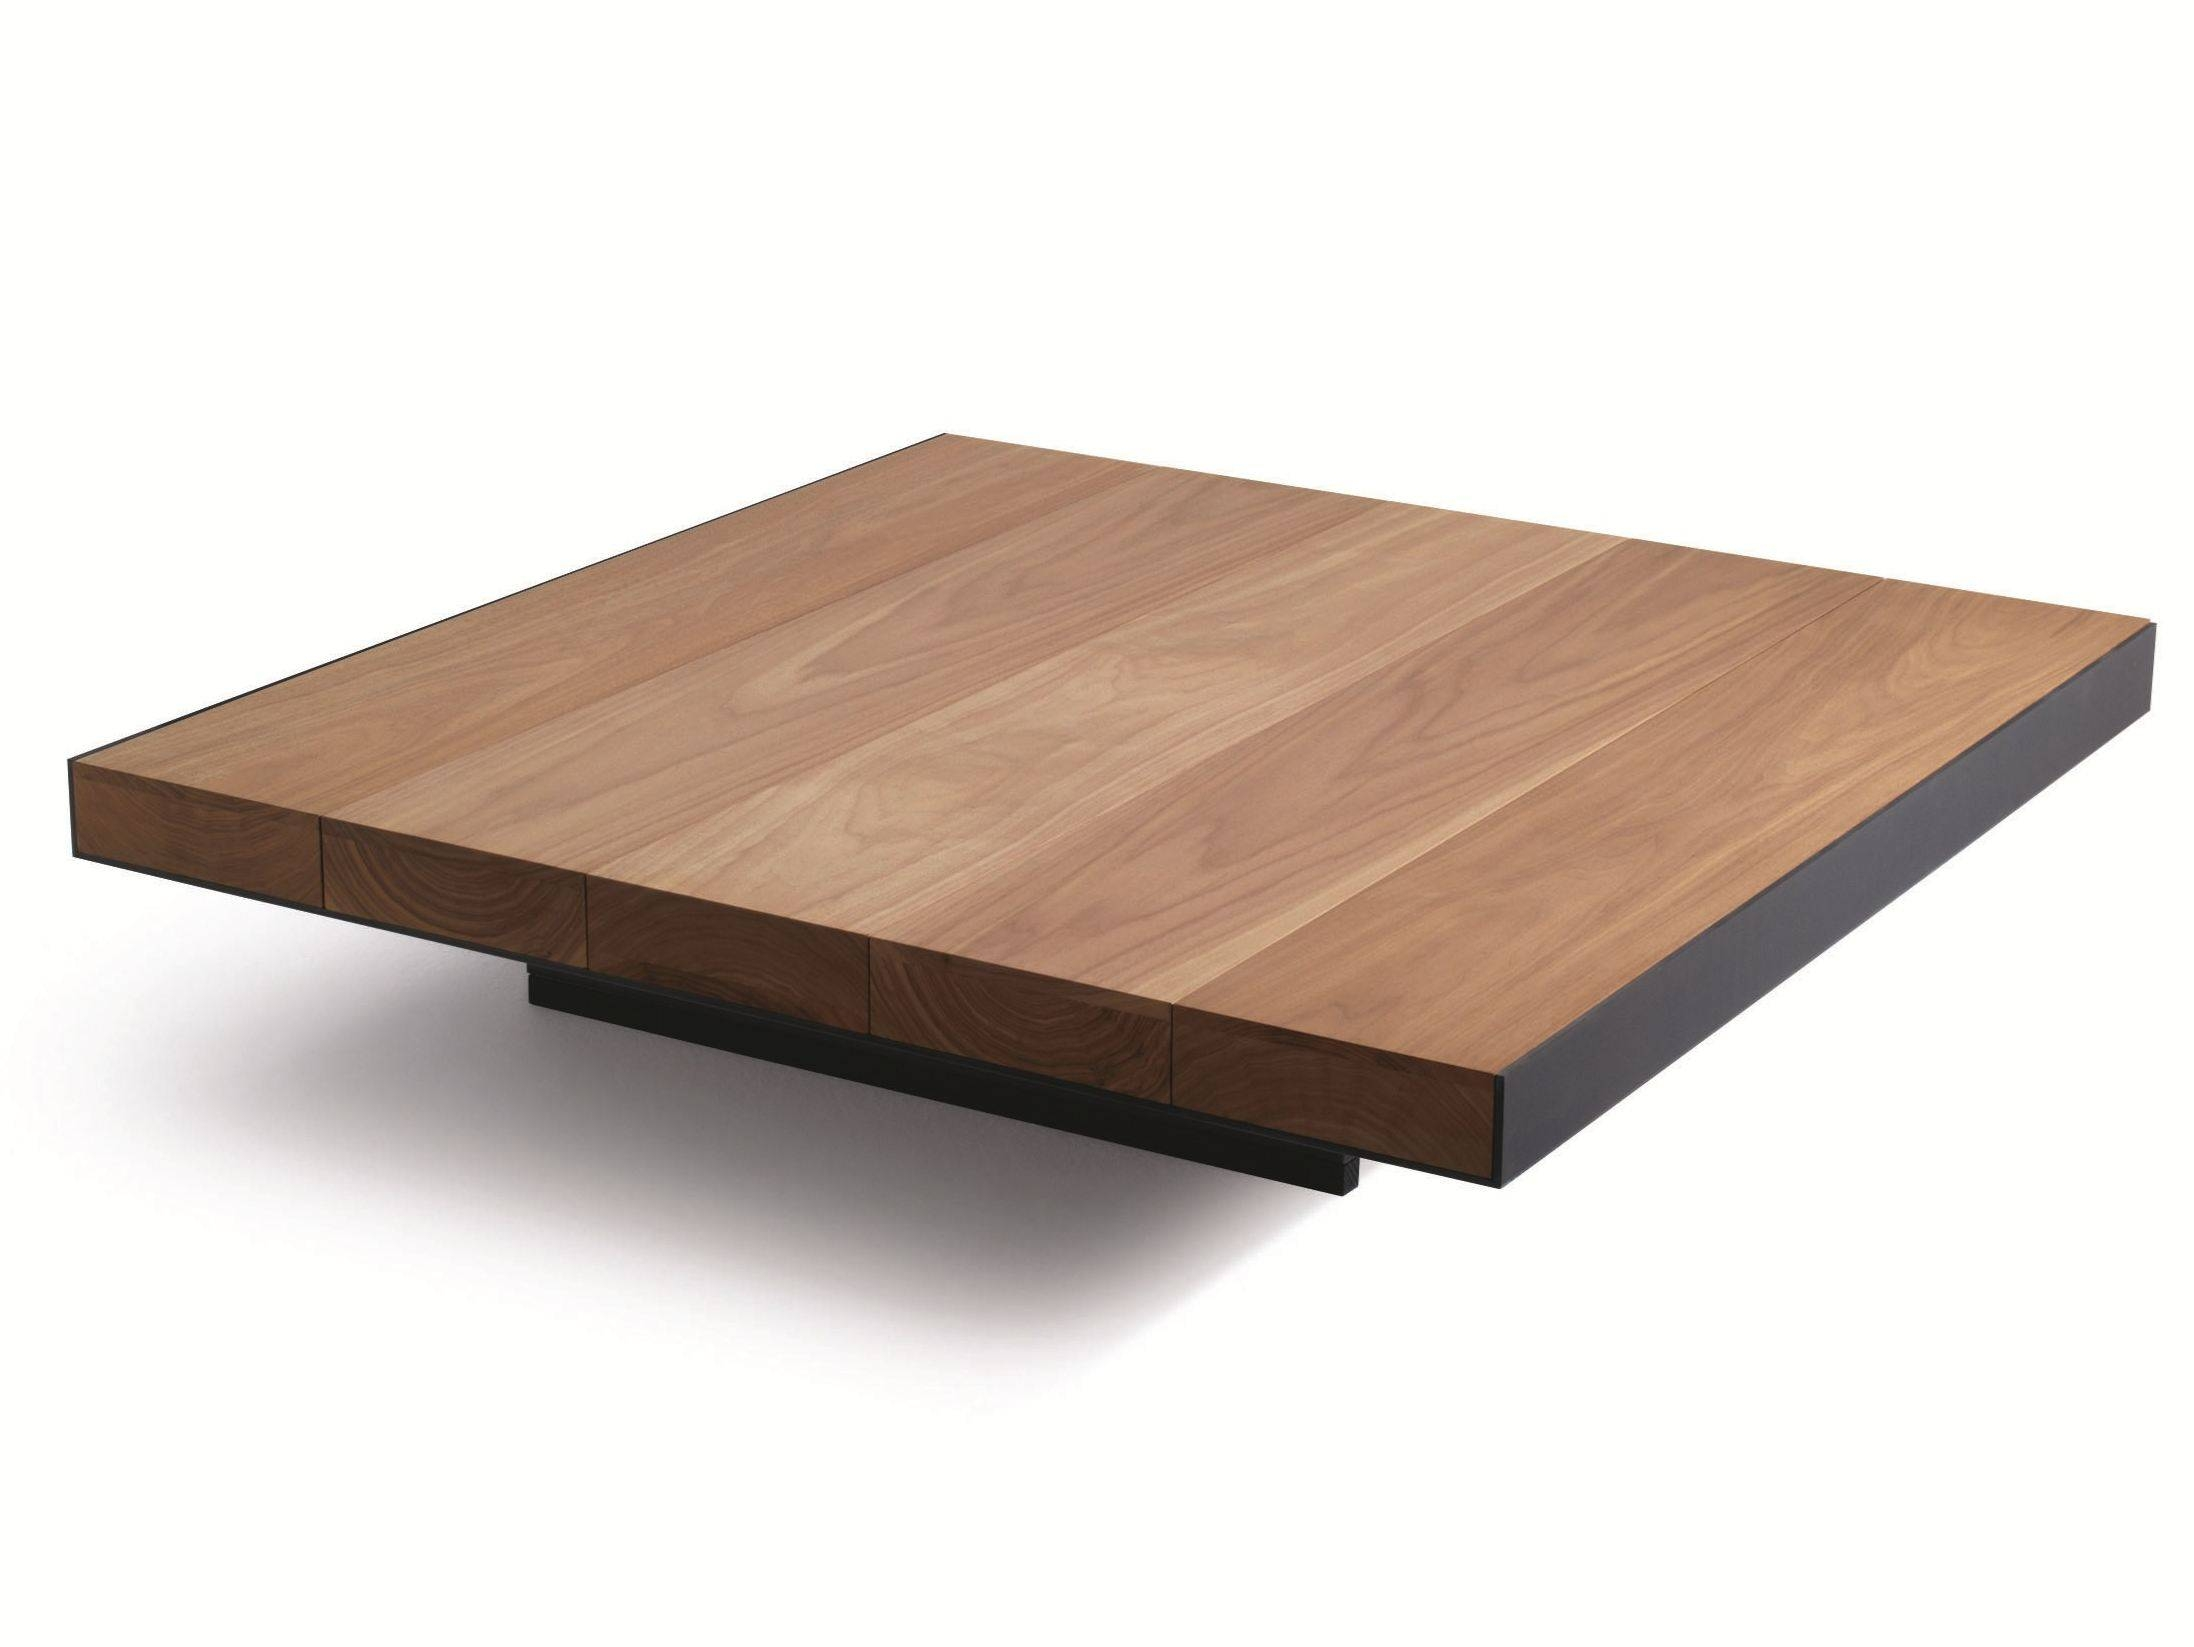 Table. Low Square Coffee Table - Home Interior Design with regard to Low Coffee Tables (Image 30 of 30)